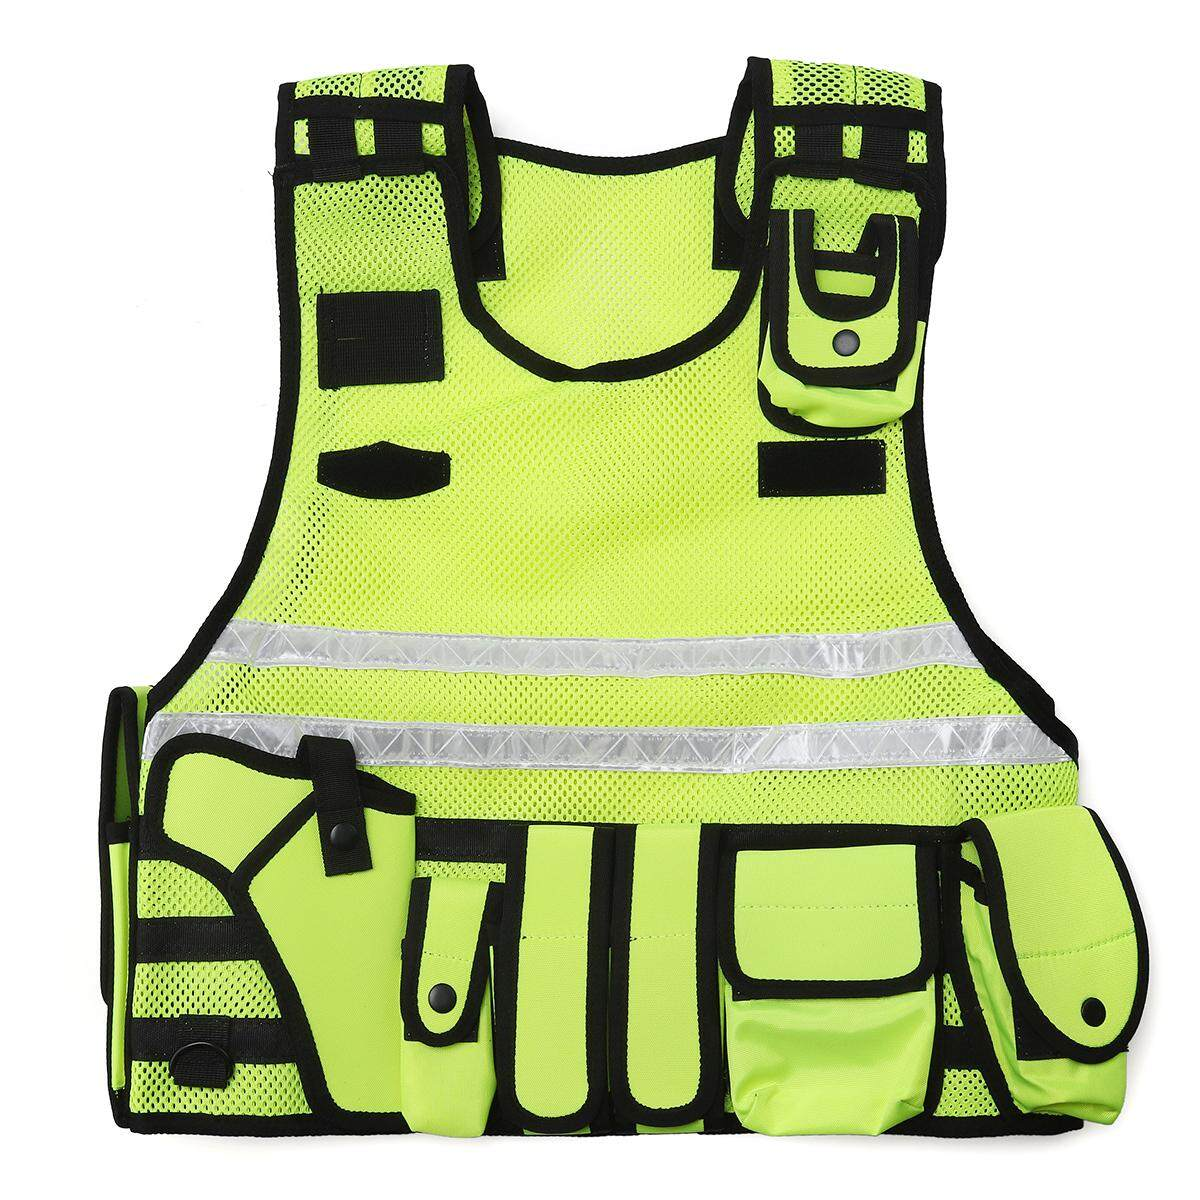 Tactic Vest Tactic Security Reflective Duty Patrol Dog Handler HI VIZ SIA CCTV